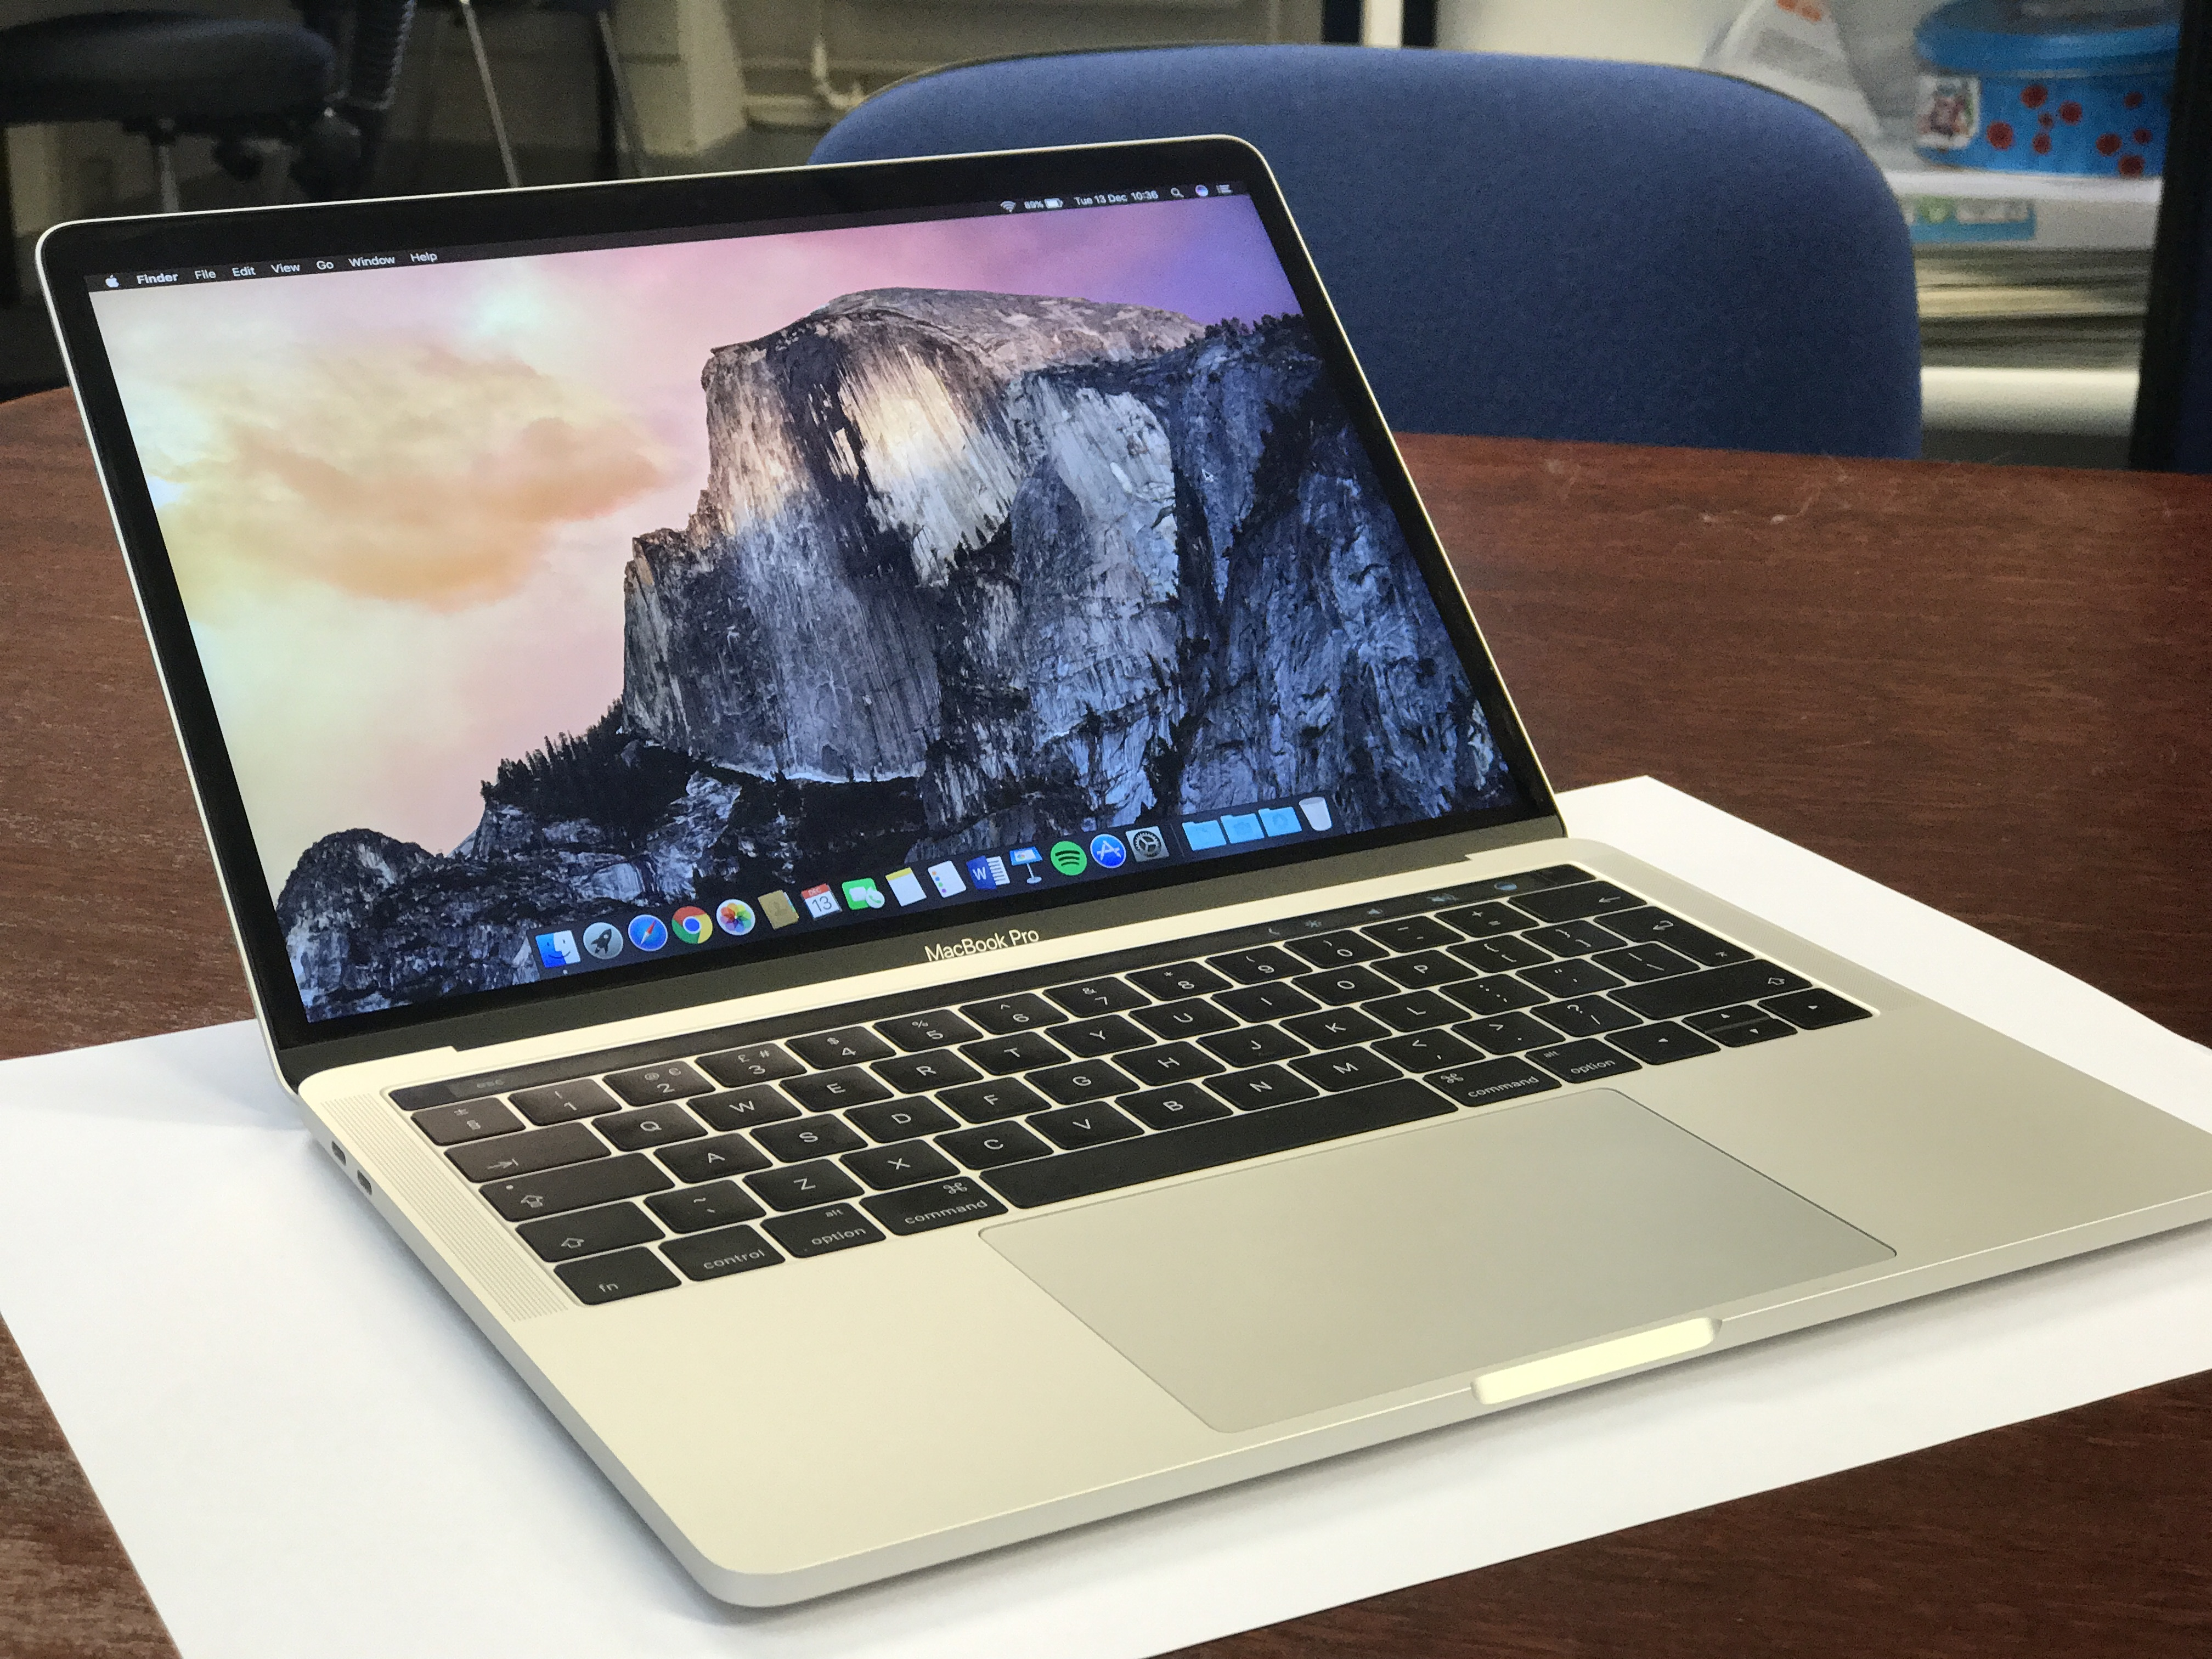 The new MacBook pro is here, but just how good is it?